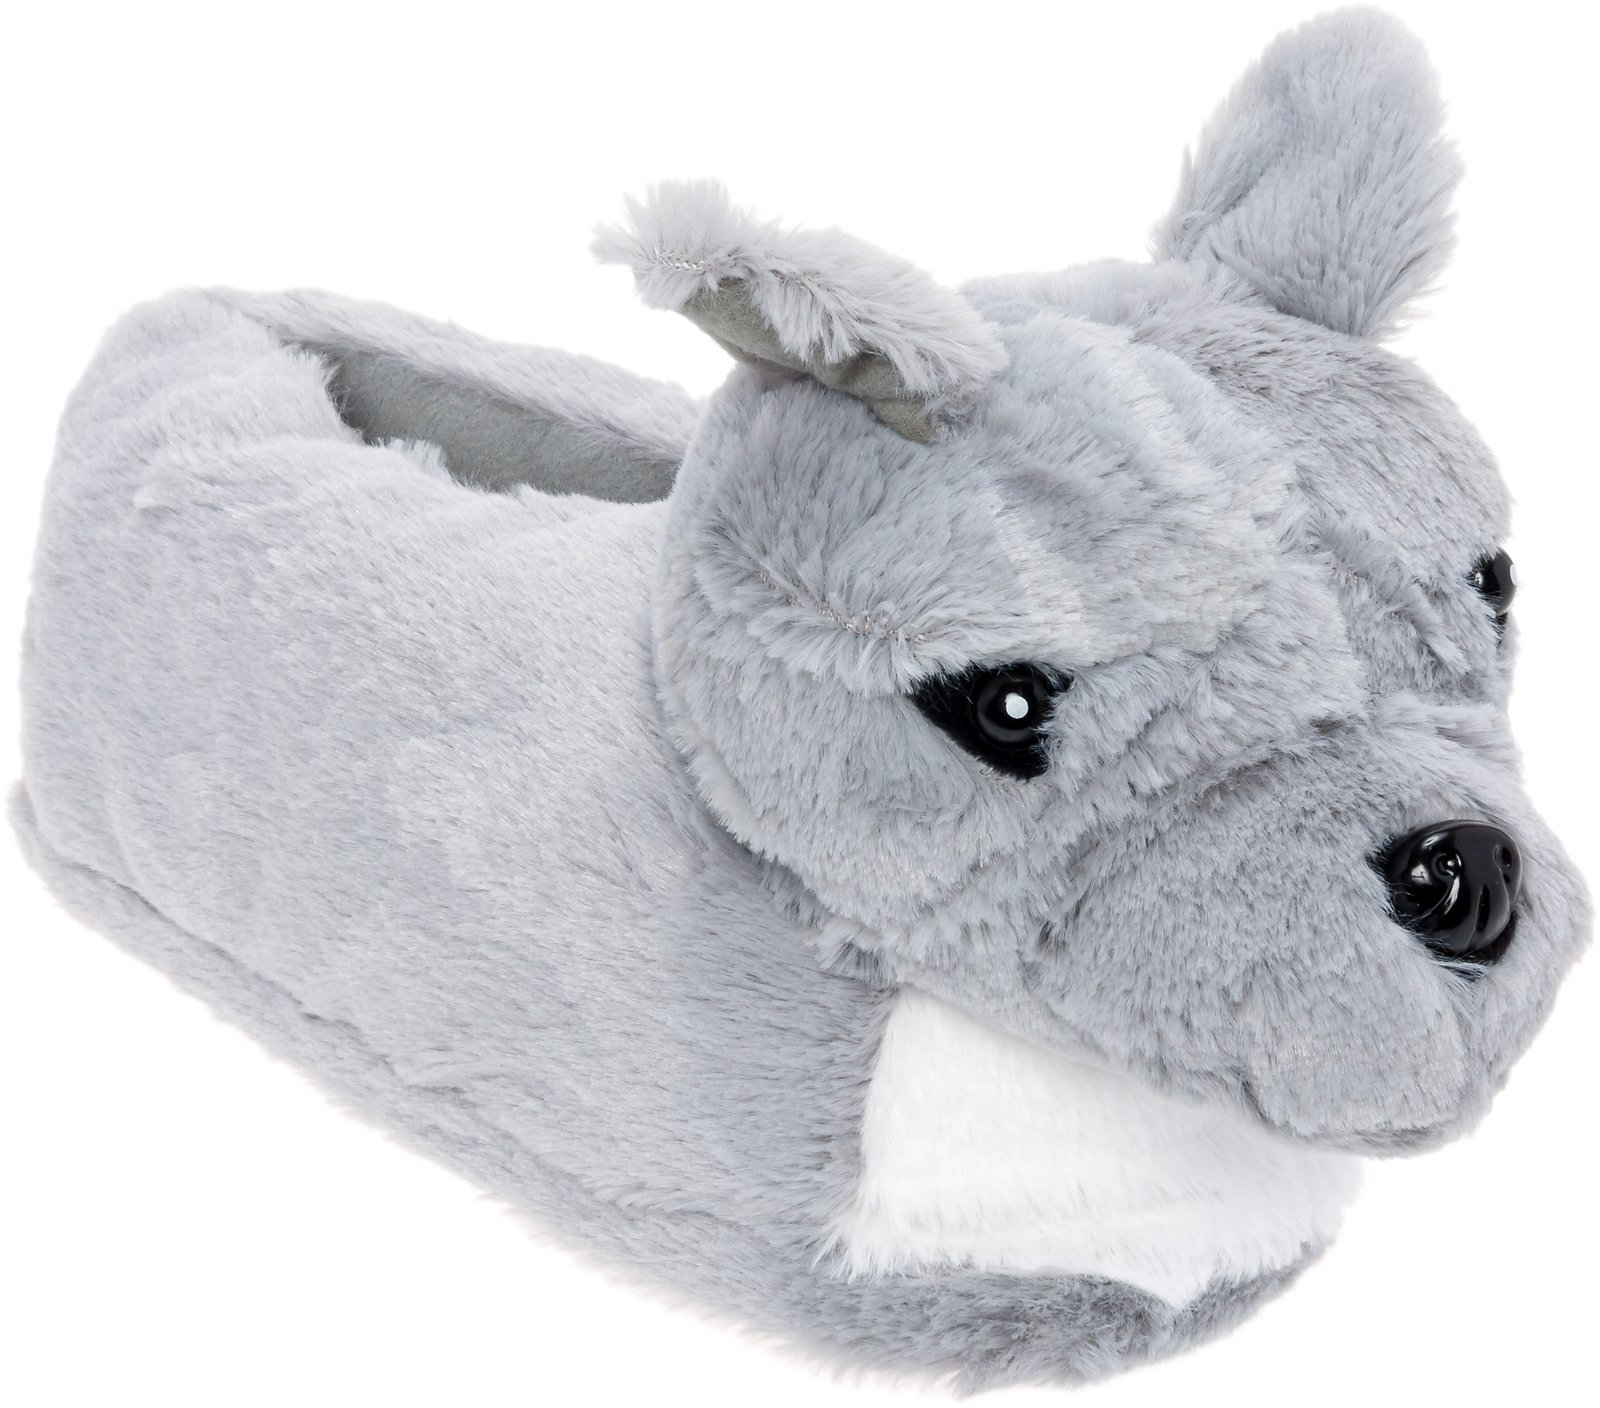 Silver Lilly Blue Nose Pit Bull Slippers - Plush Pitbull Dog Slippers w/Platform by (Small)